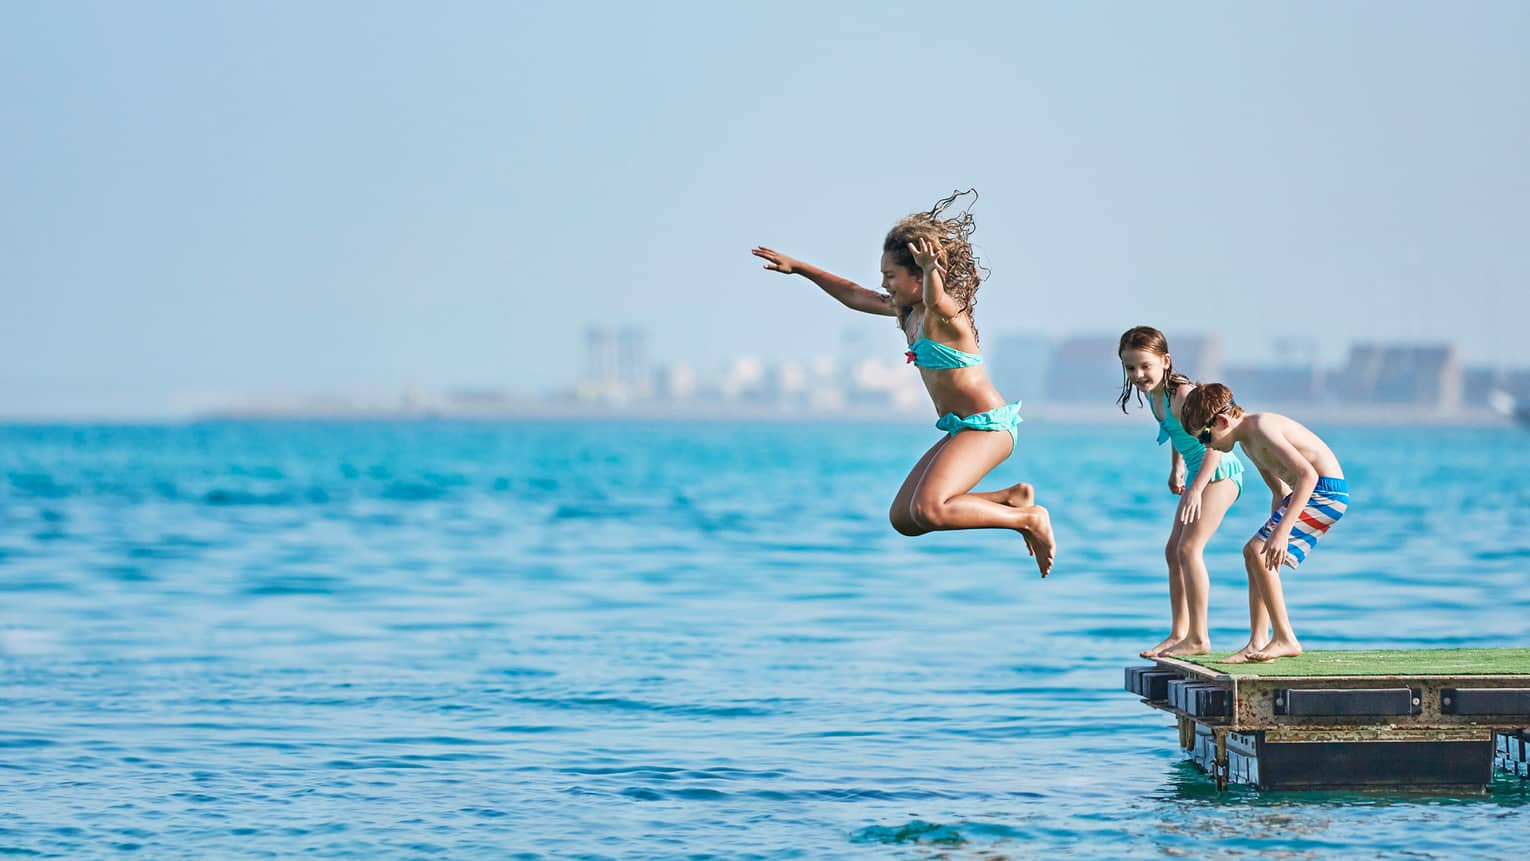 Little girl jumps into sea, two children stand behind her on wood platform